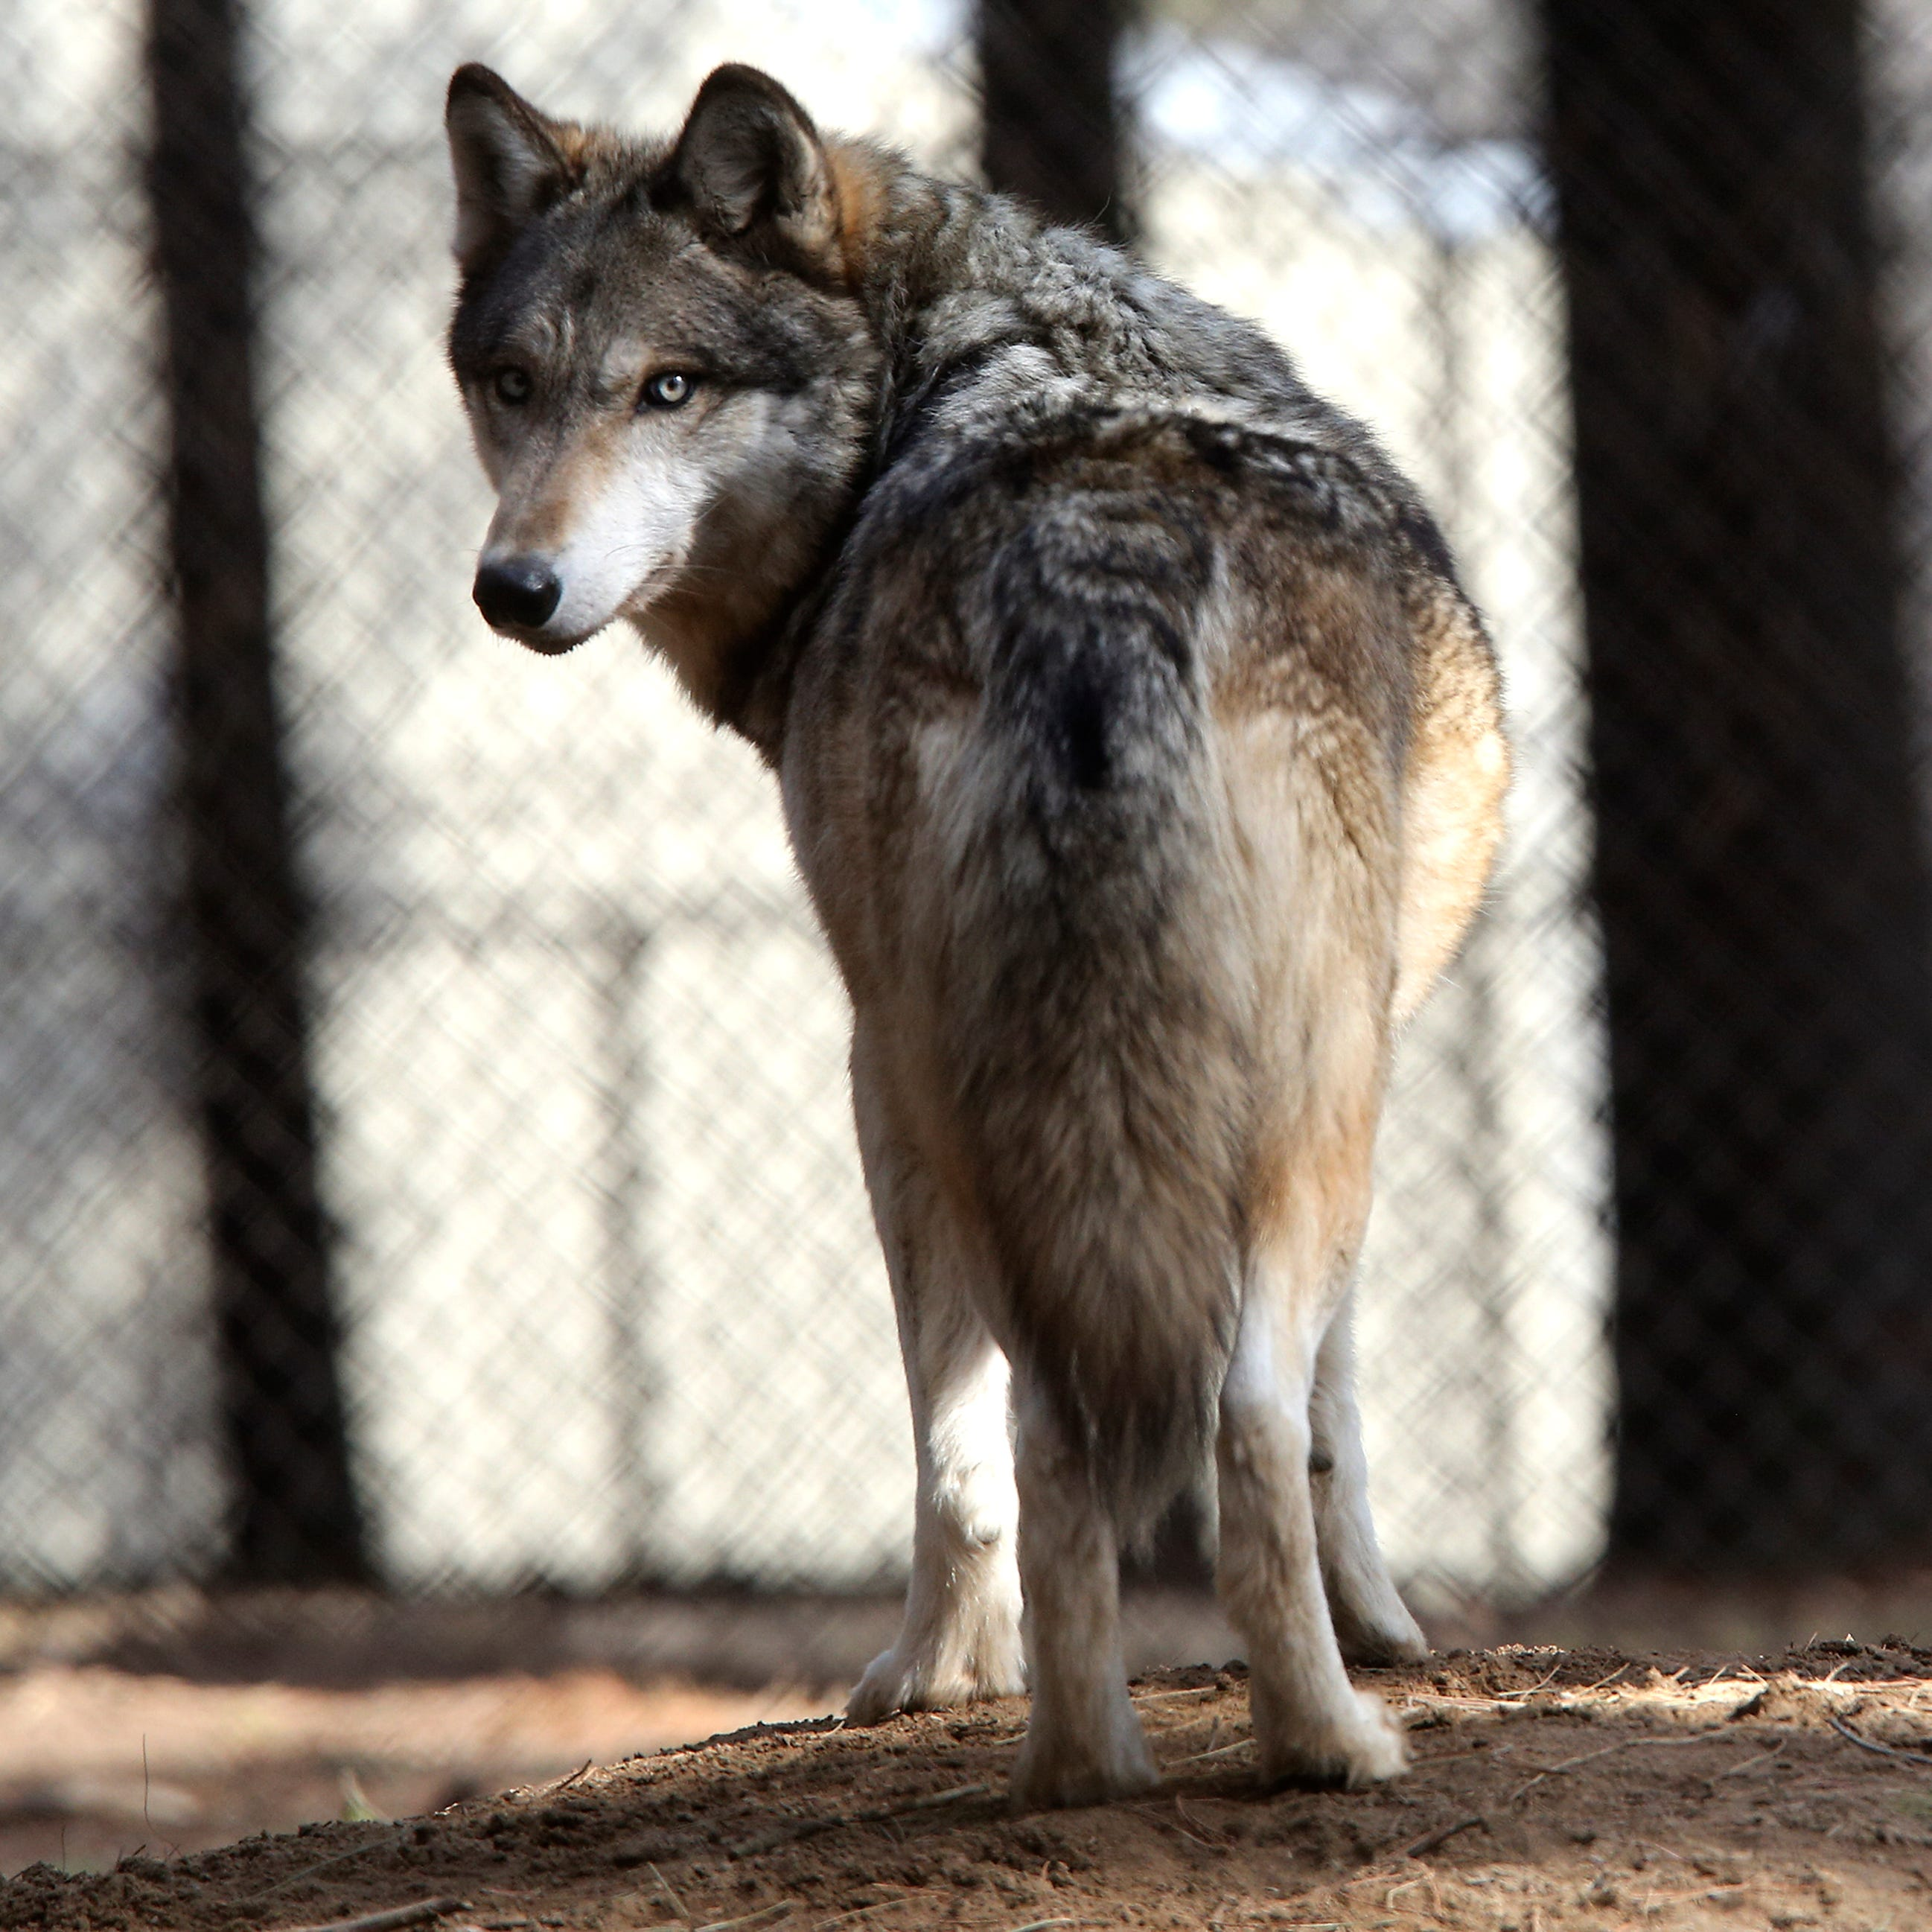 Letter: DNR disputes wolf killing claims